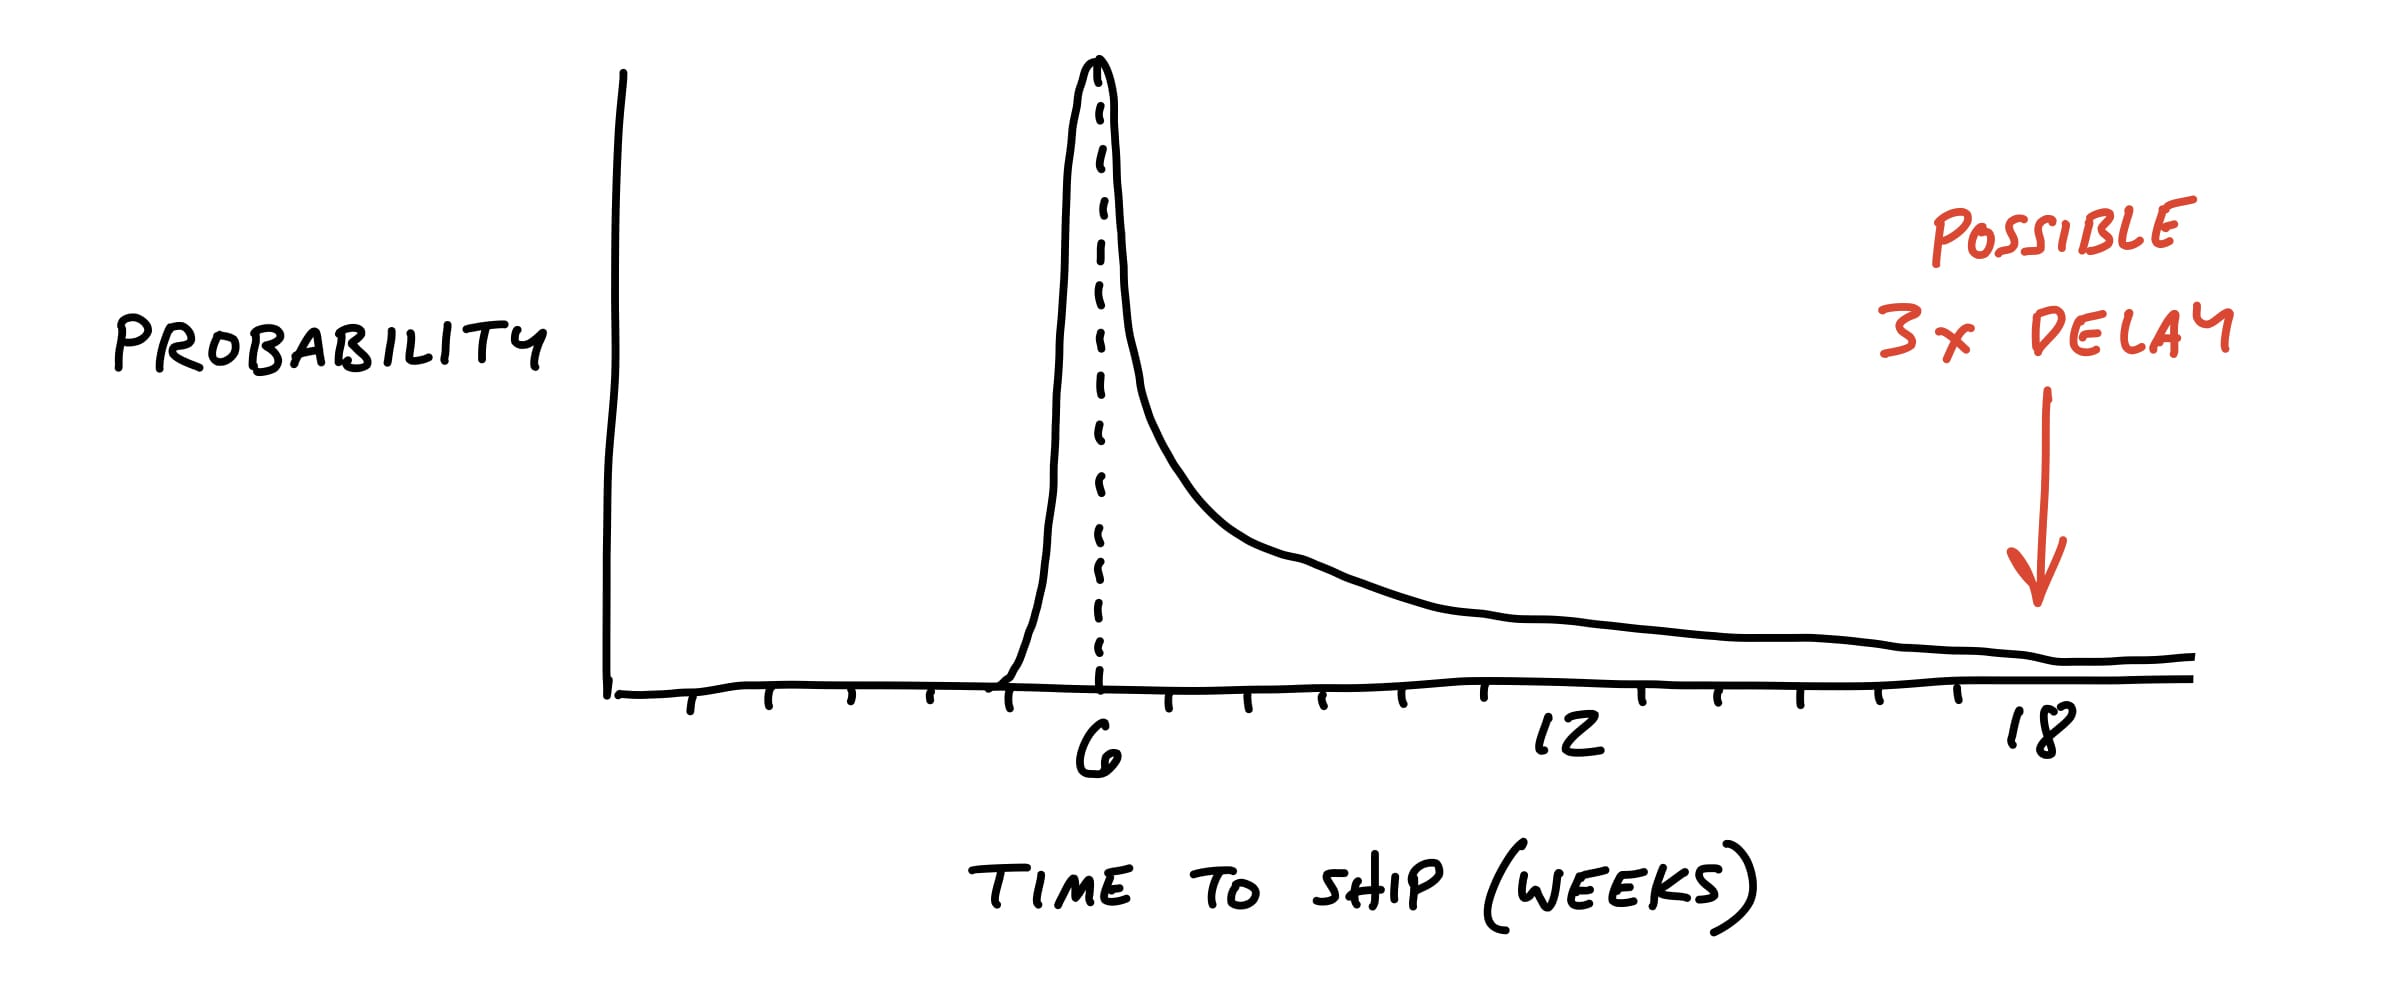 Drawing of a fat tailed probability distributation. The X and Y axes are the same as before. This time the spike up at six weeks has a long slope down which reaches all the way past the 18 week point on the X axis. The area above 18 weeks where the right tail still stretches is labled: Possible 3x delay.